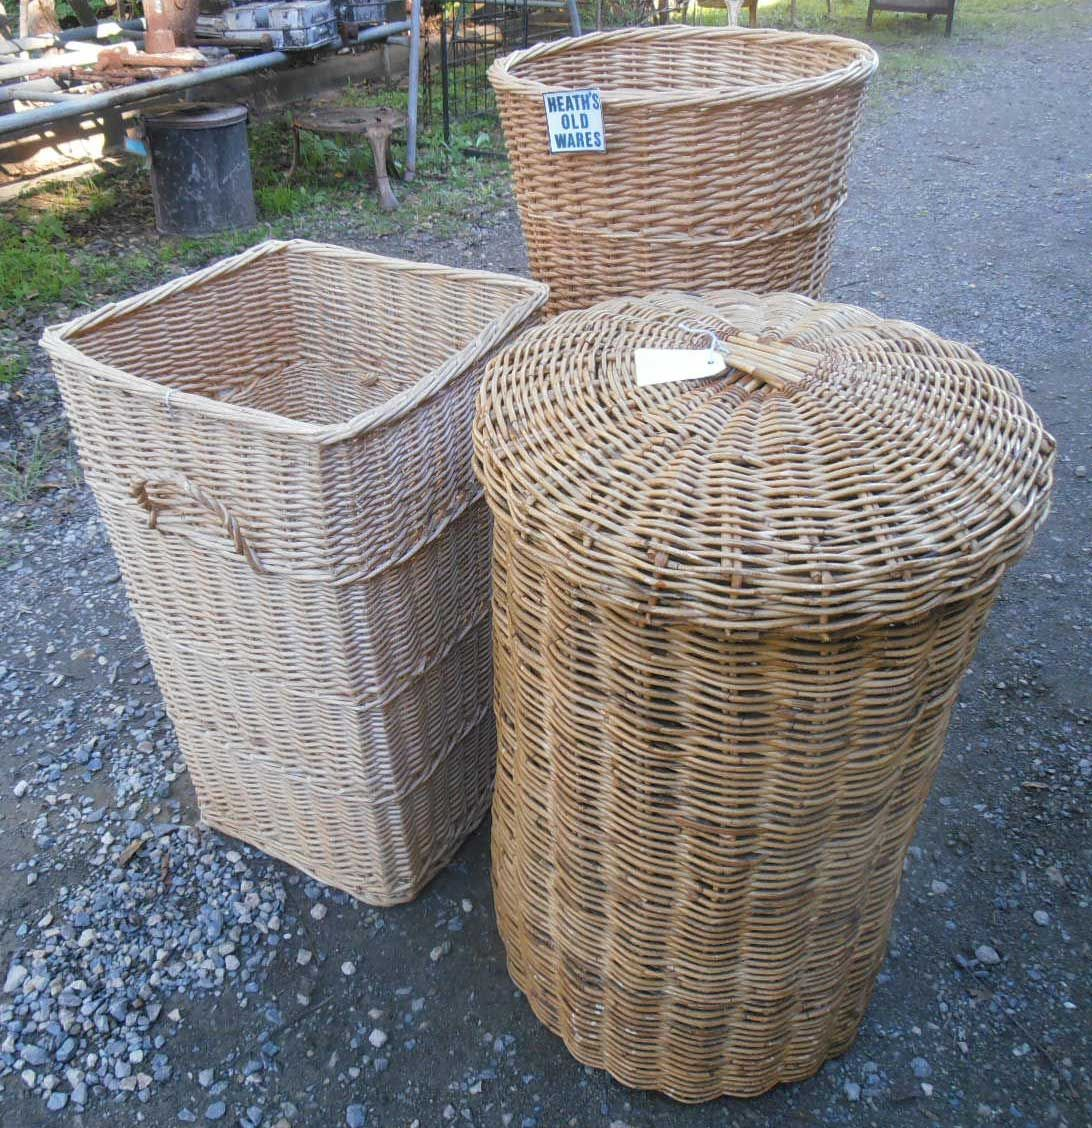 Cane Laundry Hampers 65 90 For Sale At Heaths Old Wares